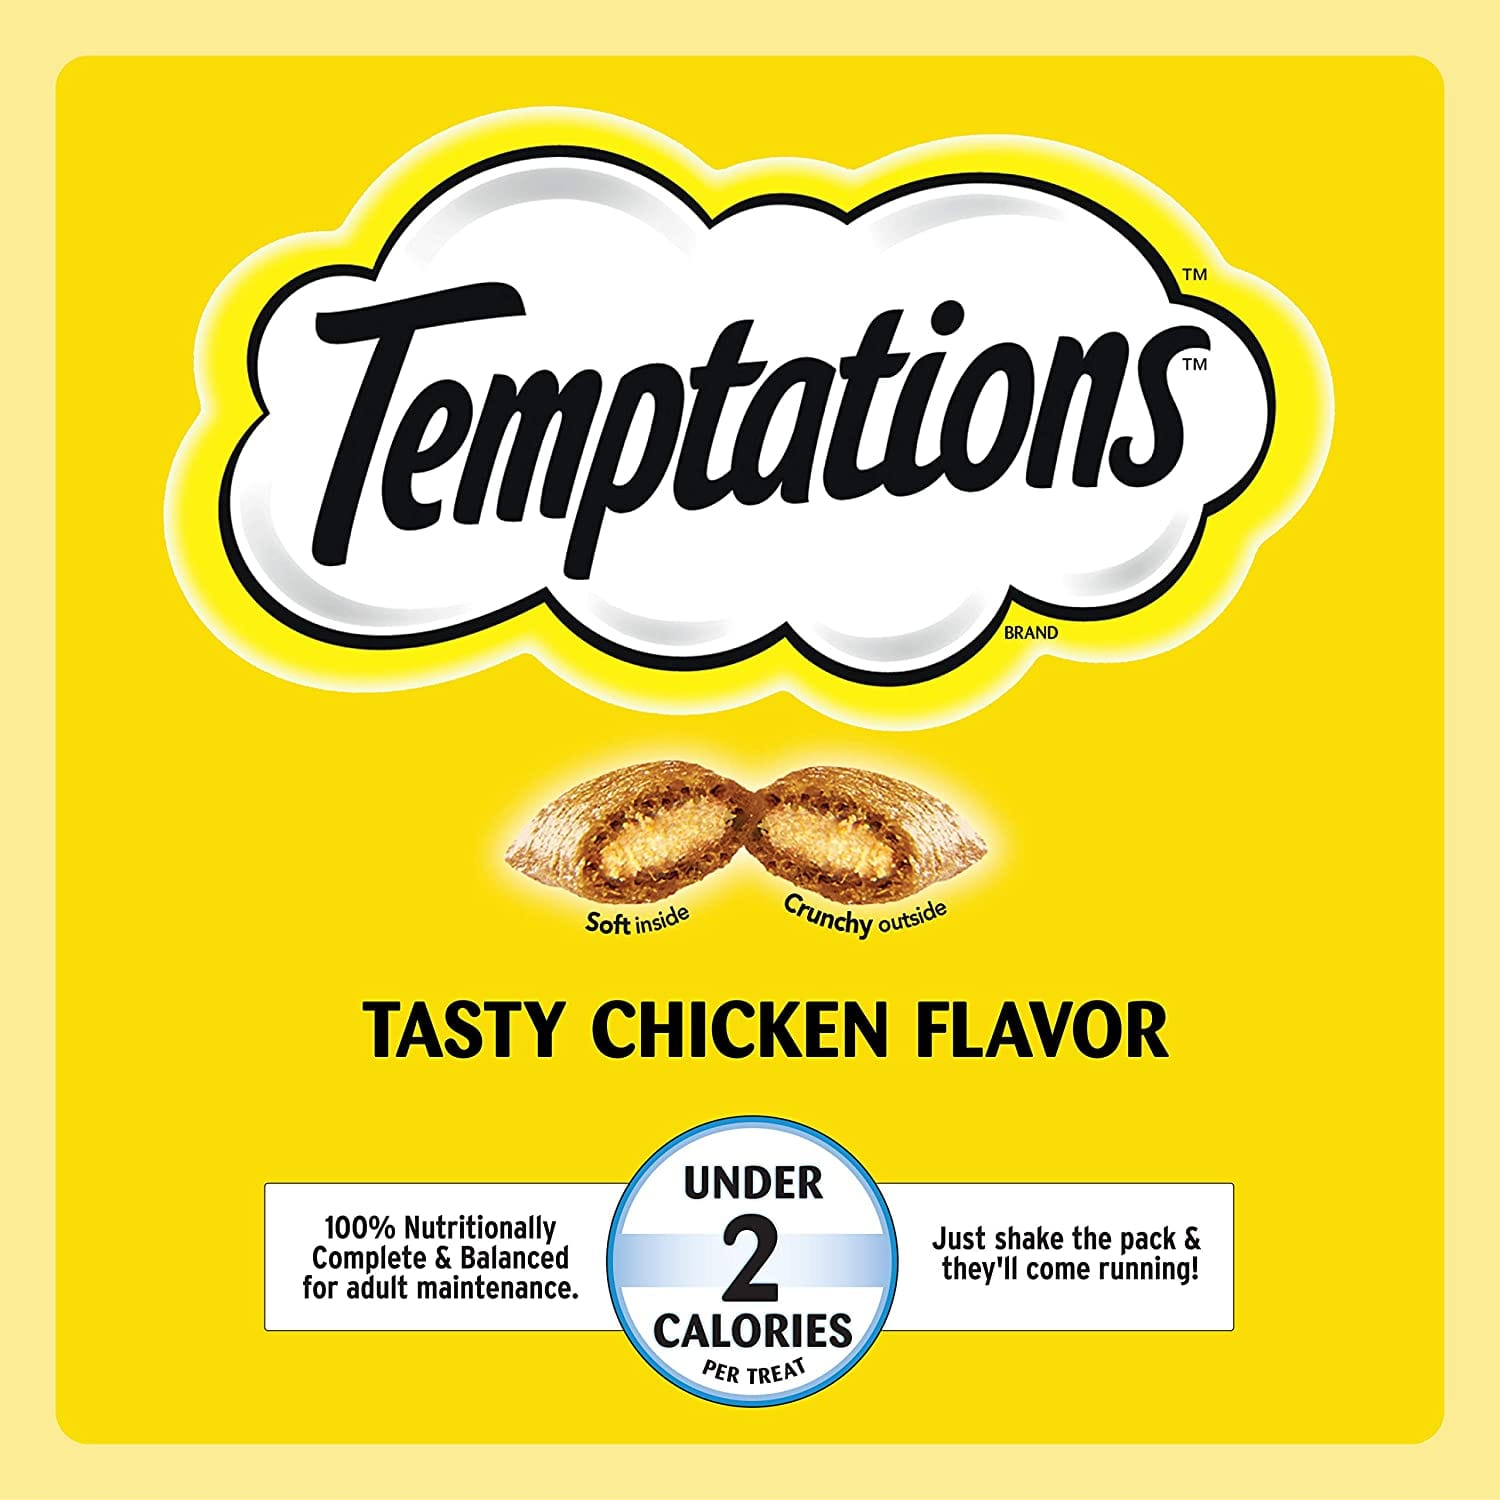 14oz Temptations Jumbo Stuff Crunchy and Soft Cat Treats (Tasty Chicken Flavor)